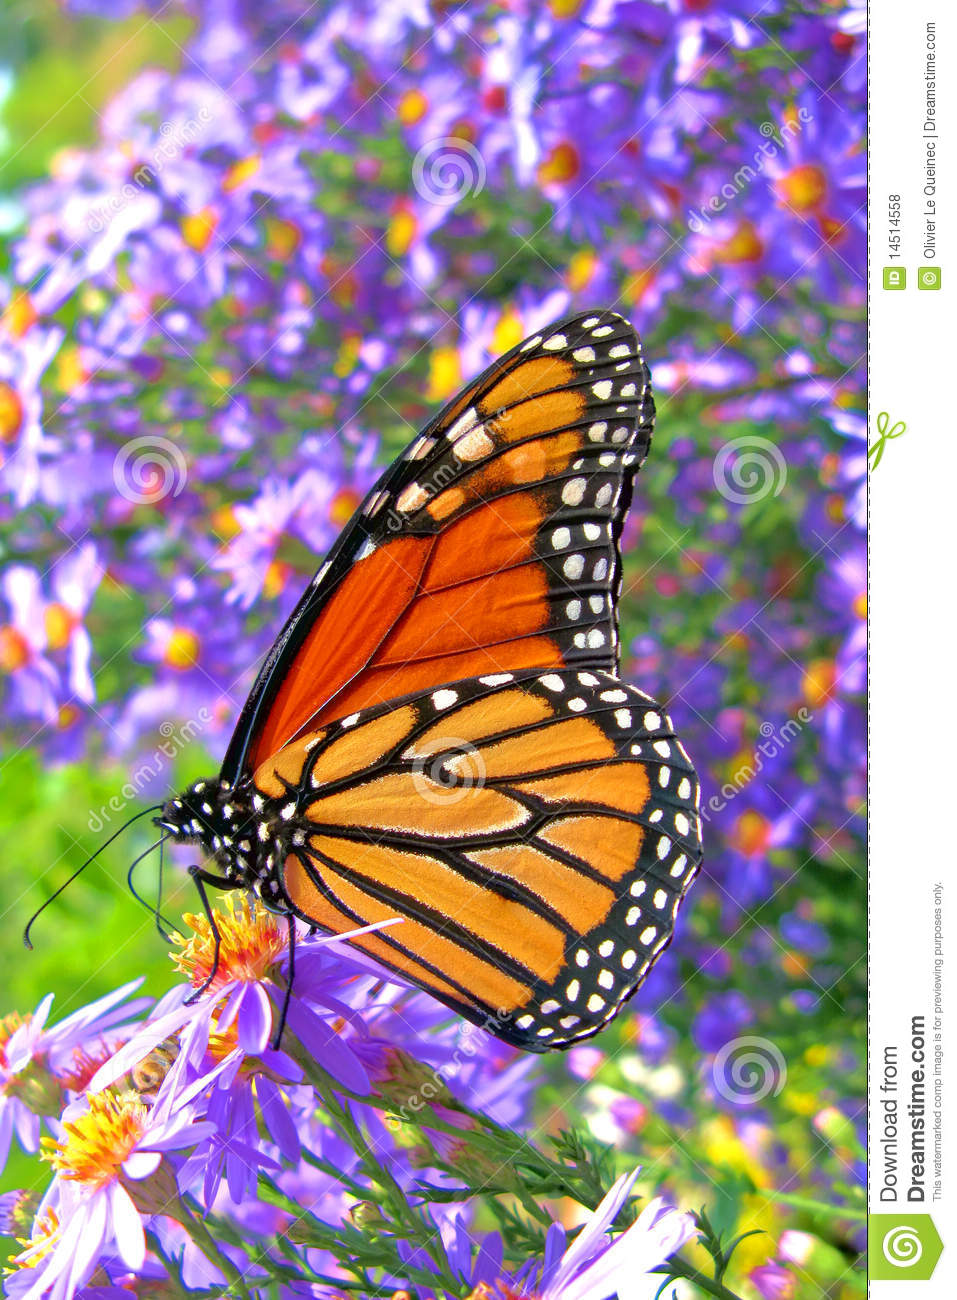 Monarch Butterfly Feeding on Purple Flowers Pollen